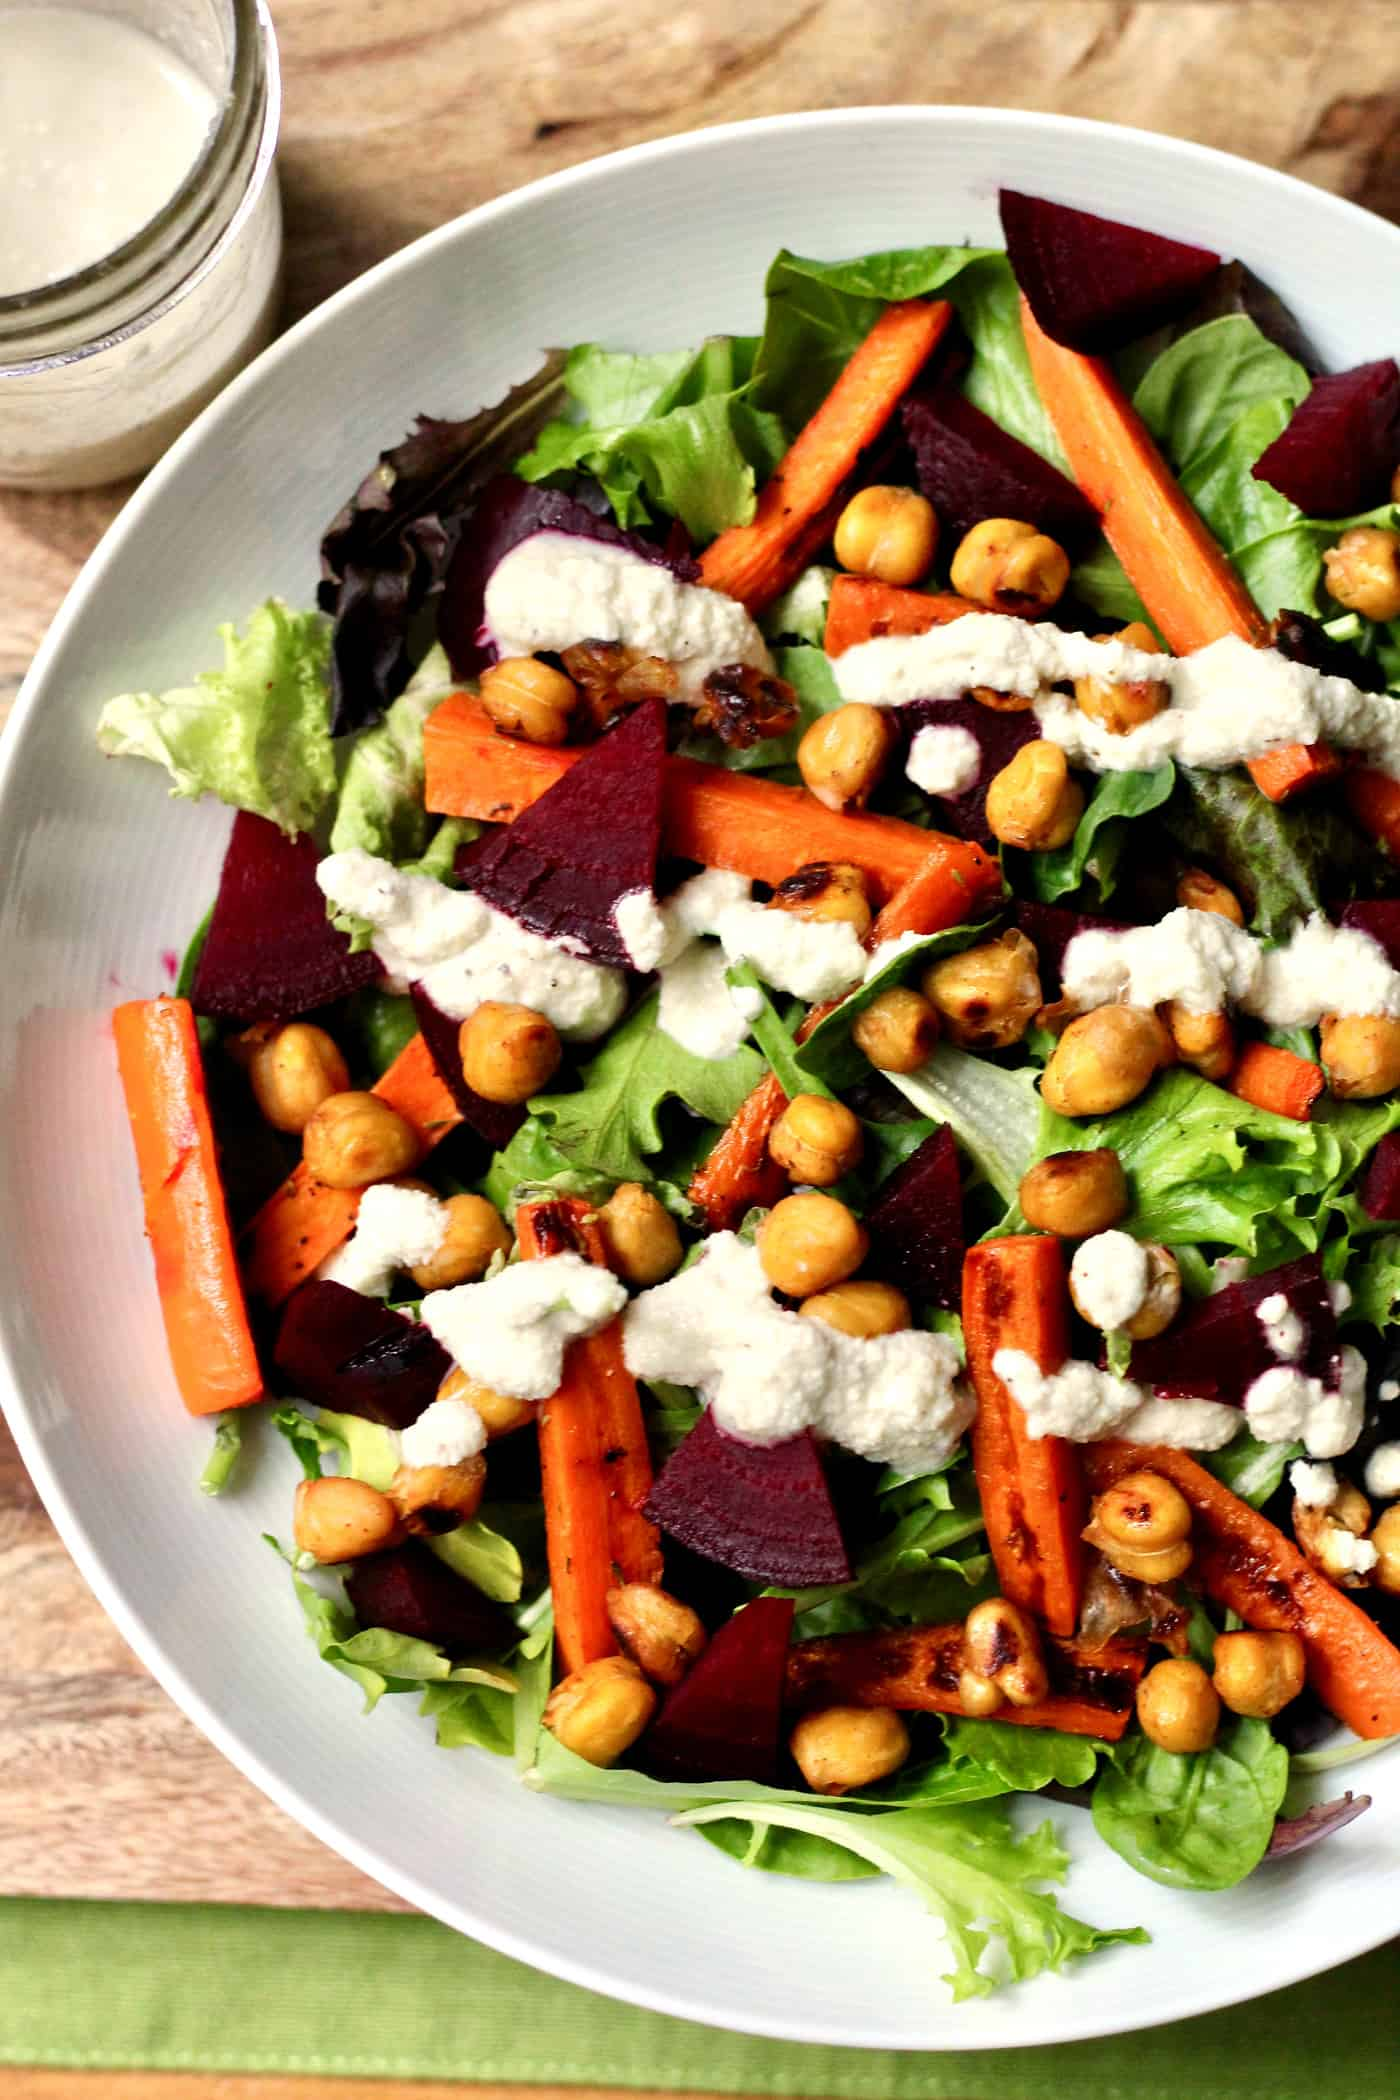 Roasted Spring Vegetable Salad with Crispy Chickpeas and Creamy Cashew Dressing